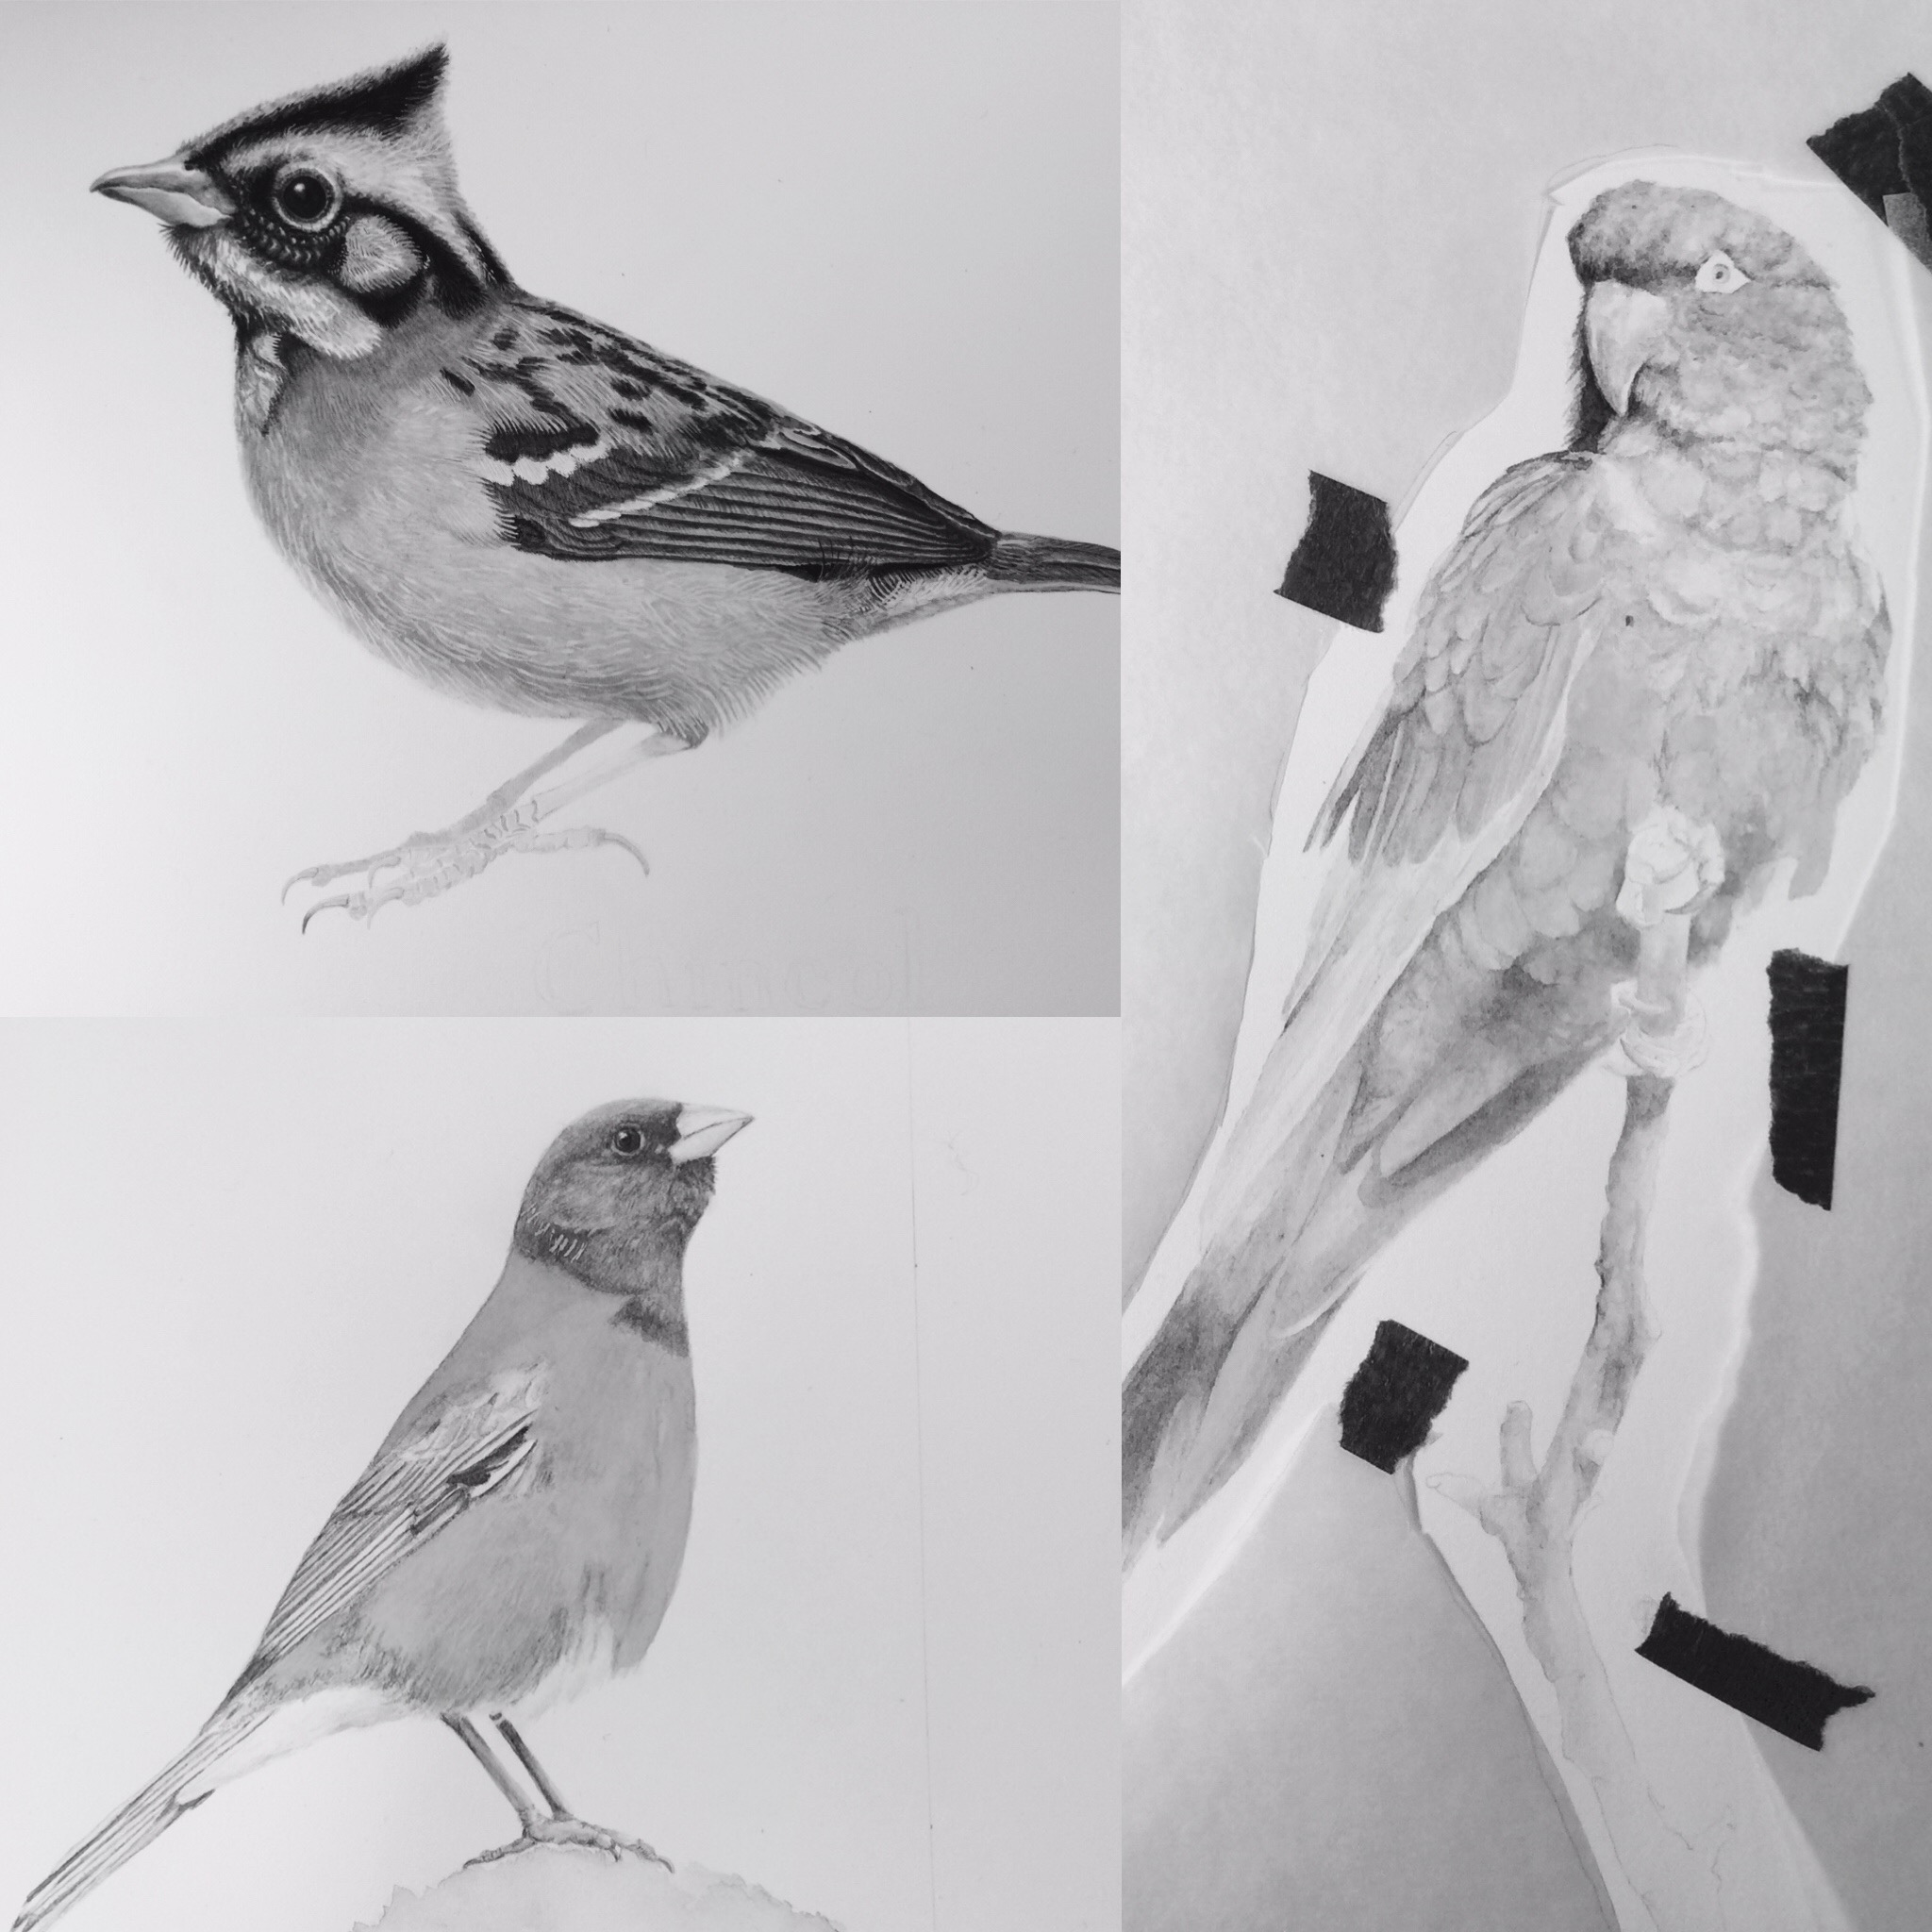 Birds Illustration workshops